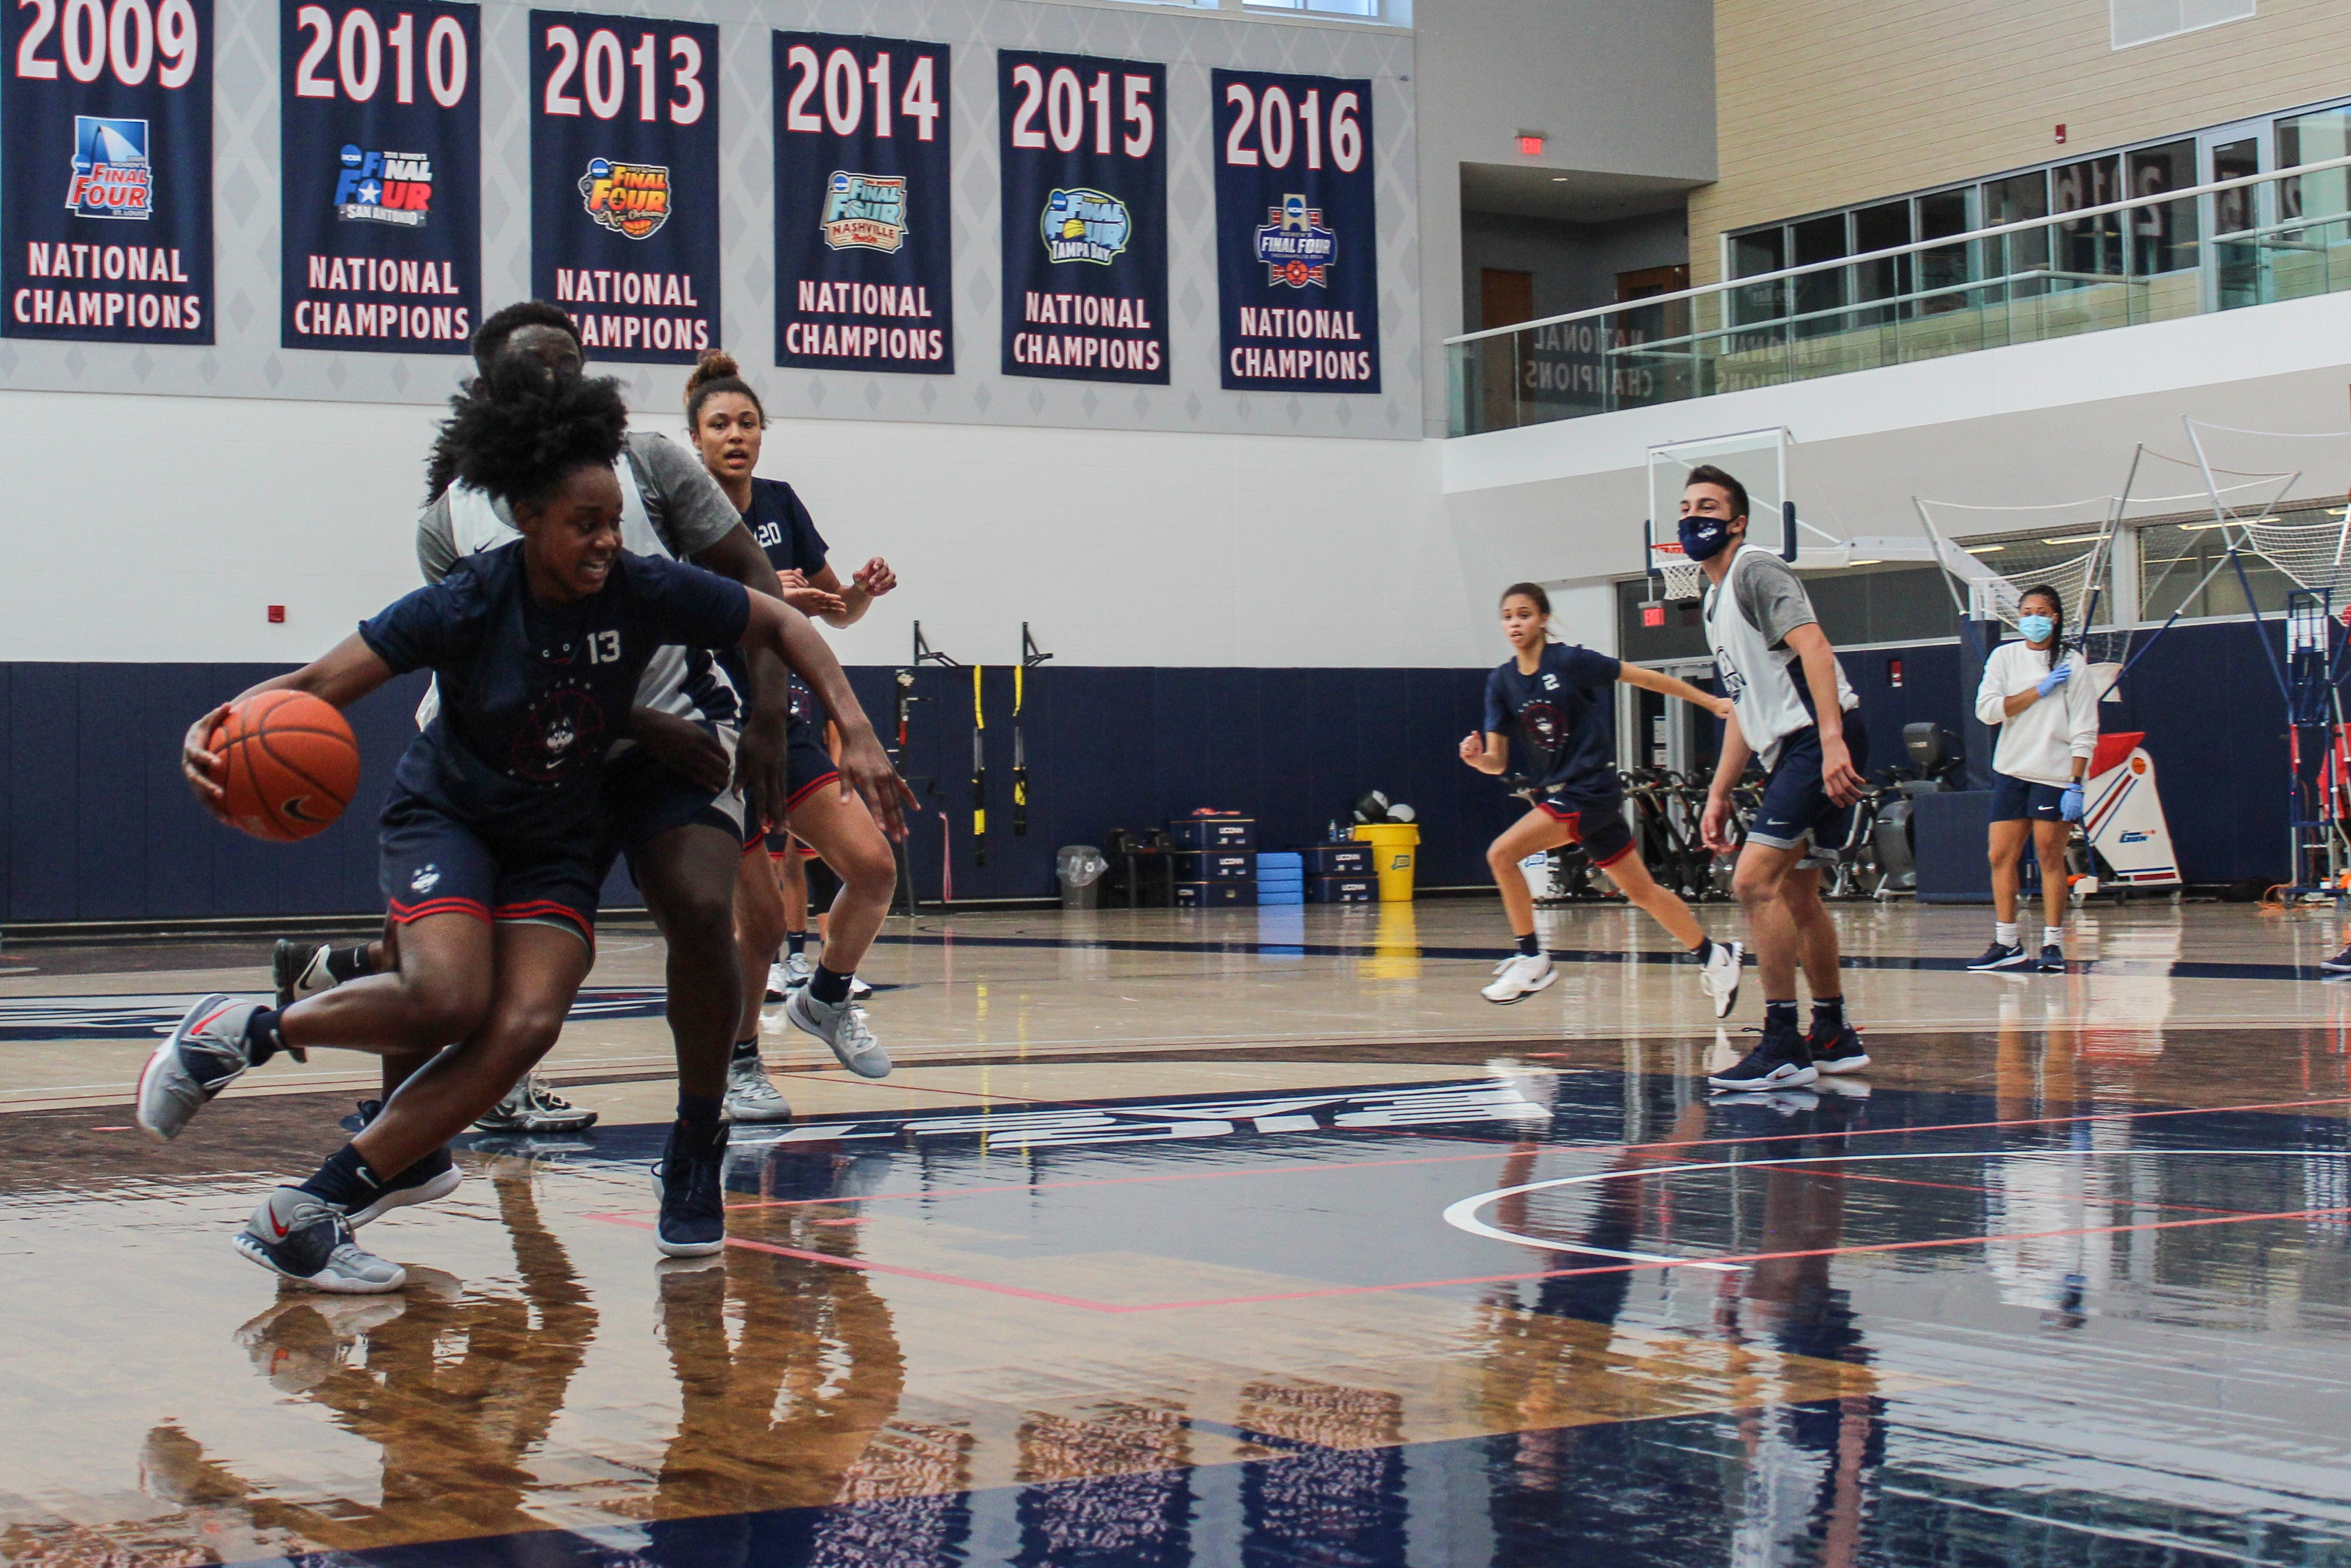 The UConn women's basketball team practicing ahead of the start of their season, which was delayed by the pandemic.